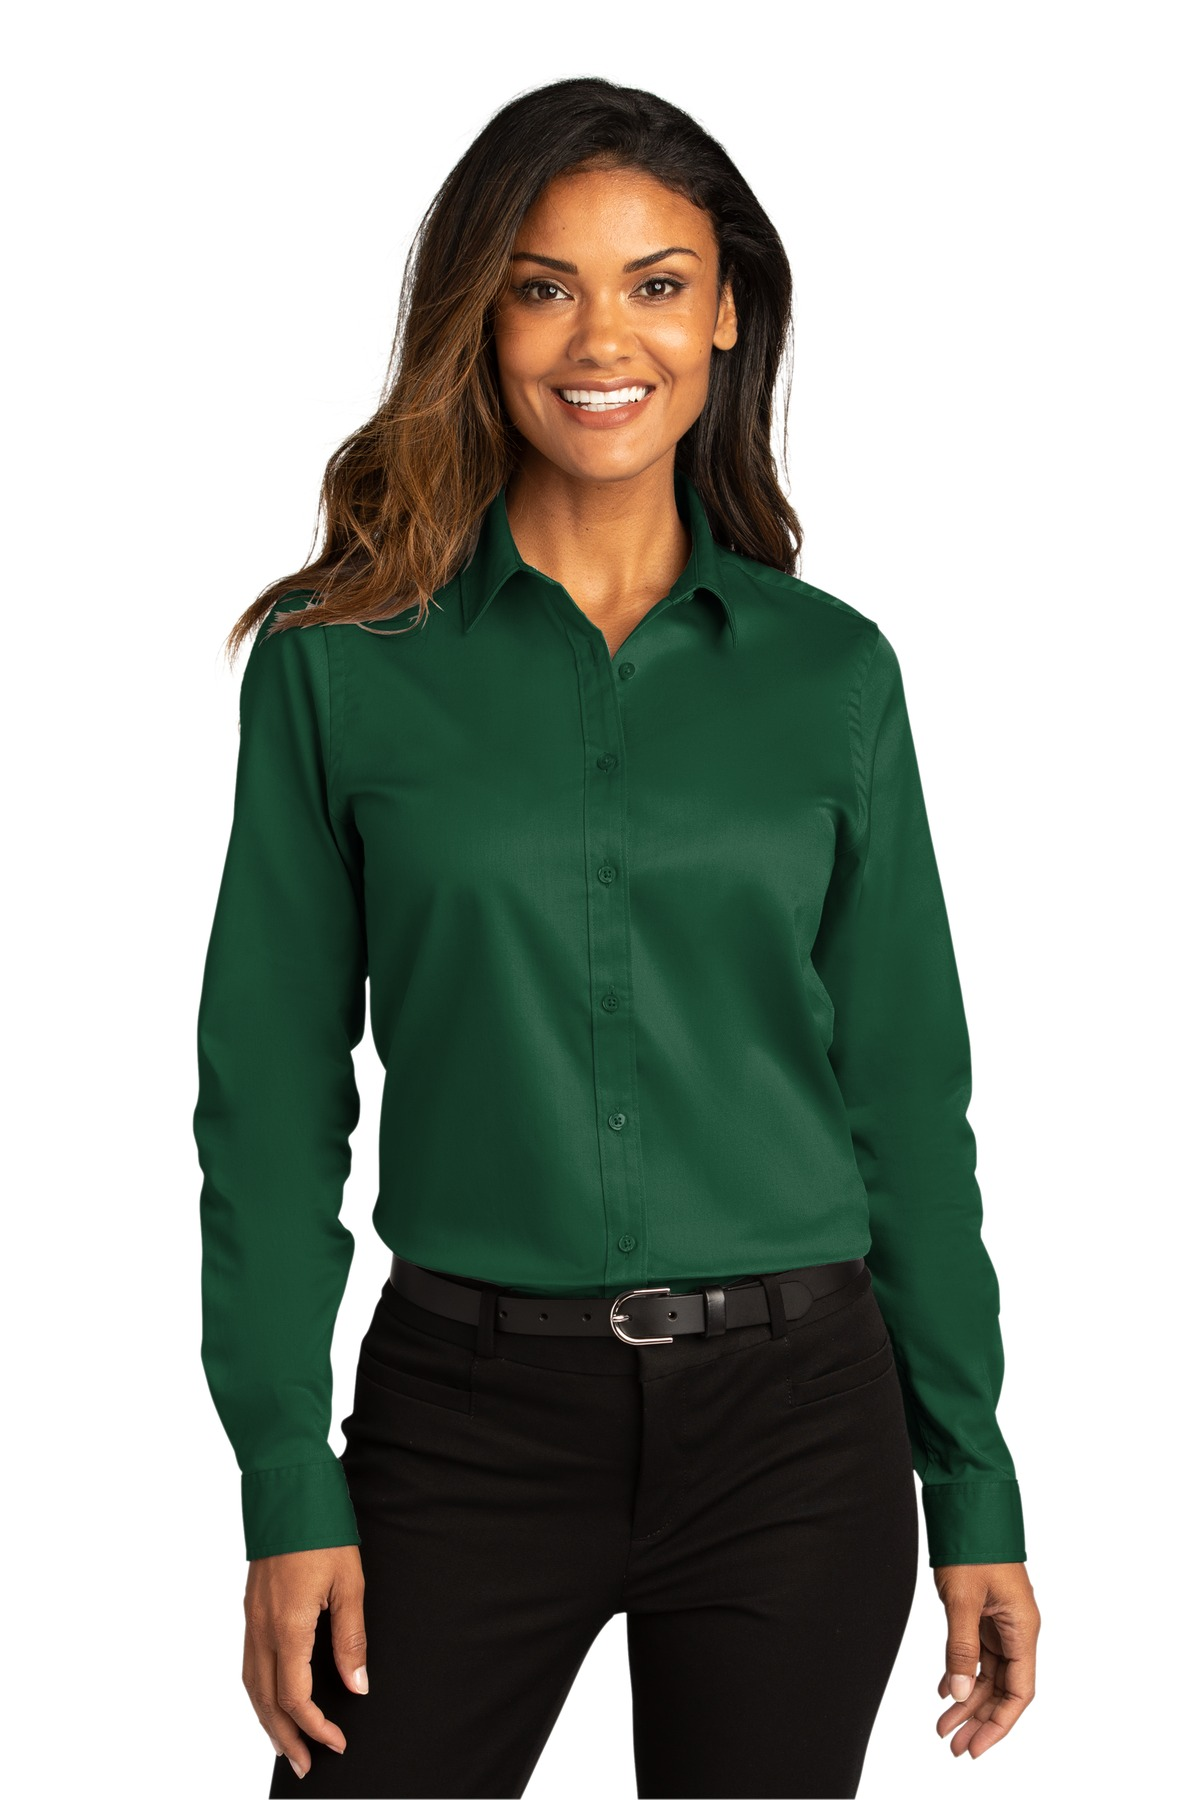 Port Authority ®  Ladies Long Sleeve SuperPro ™ React ™ Twill Shirt. LW808 - Dark Green